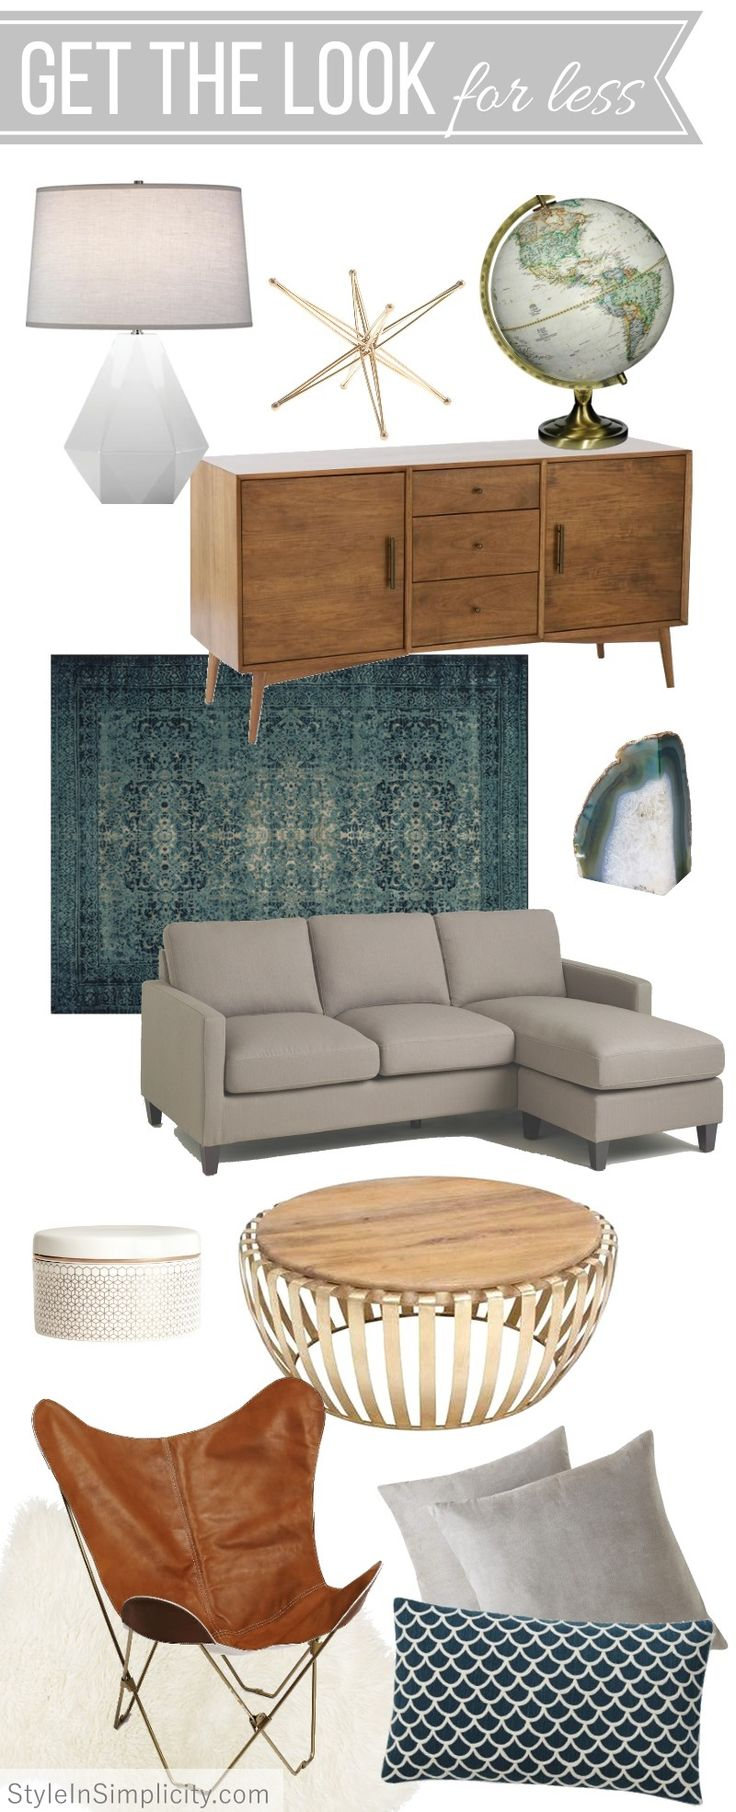 Take a look at this mid-century modern home decor with dazzling mid-century furniture | www.delightfull.eu/blog #midcenturymodern #midcenturyhomedecor #midcenturyfurniture